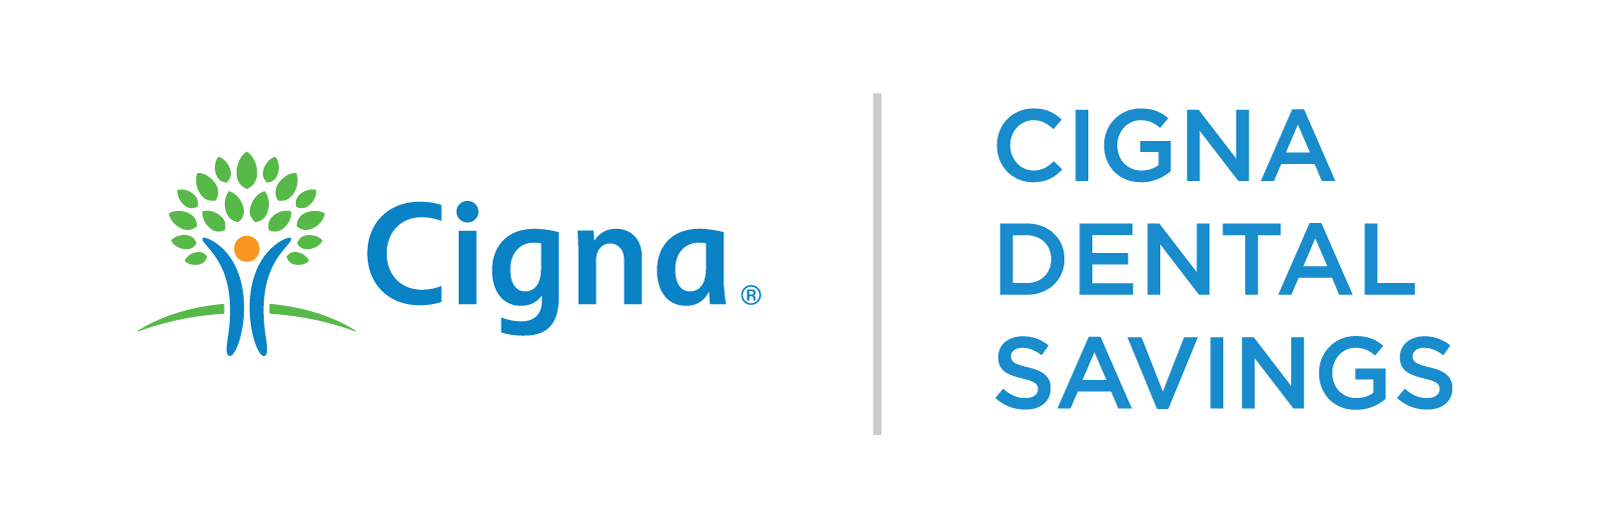 Cigna Logo Png, png collections at sccpre.cat.